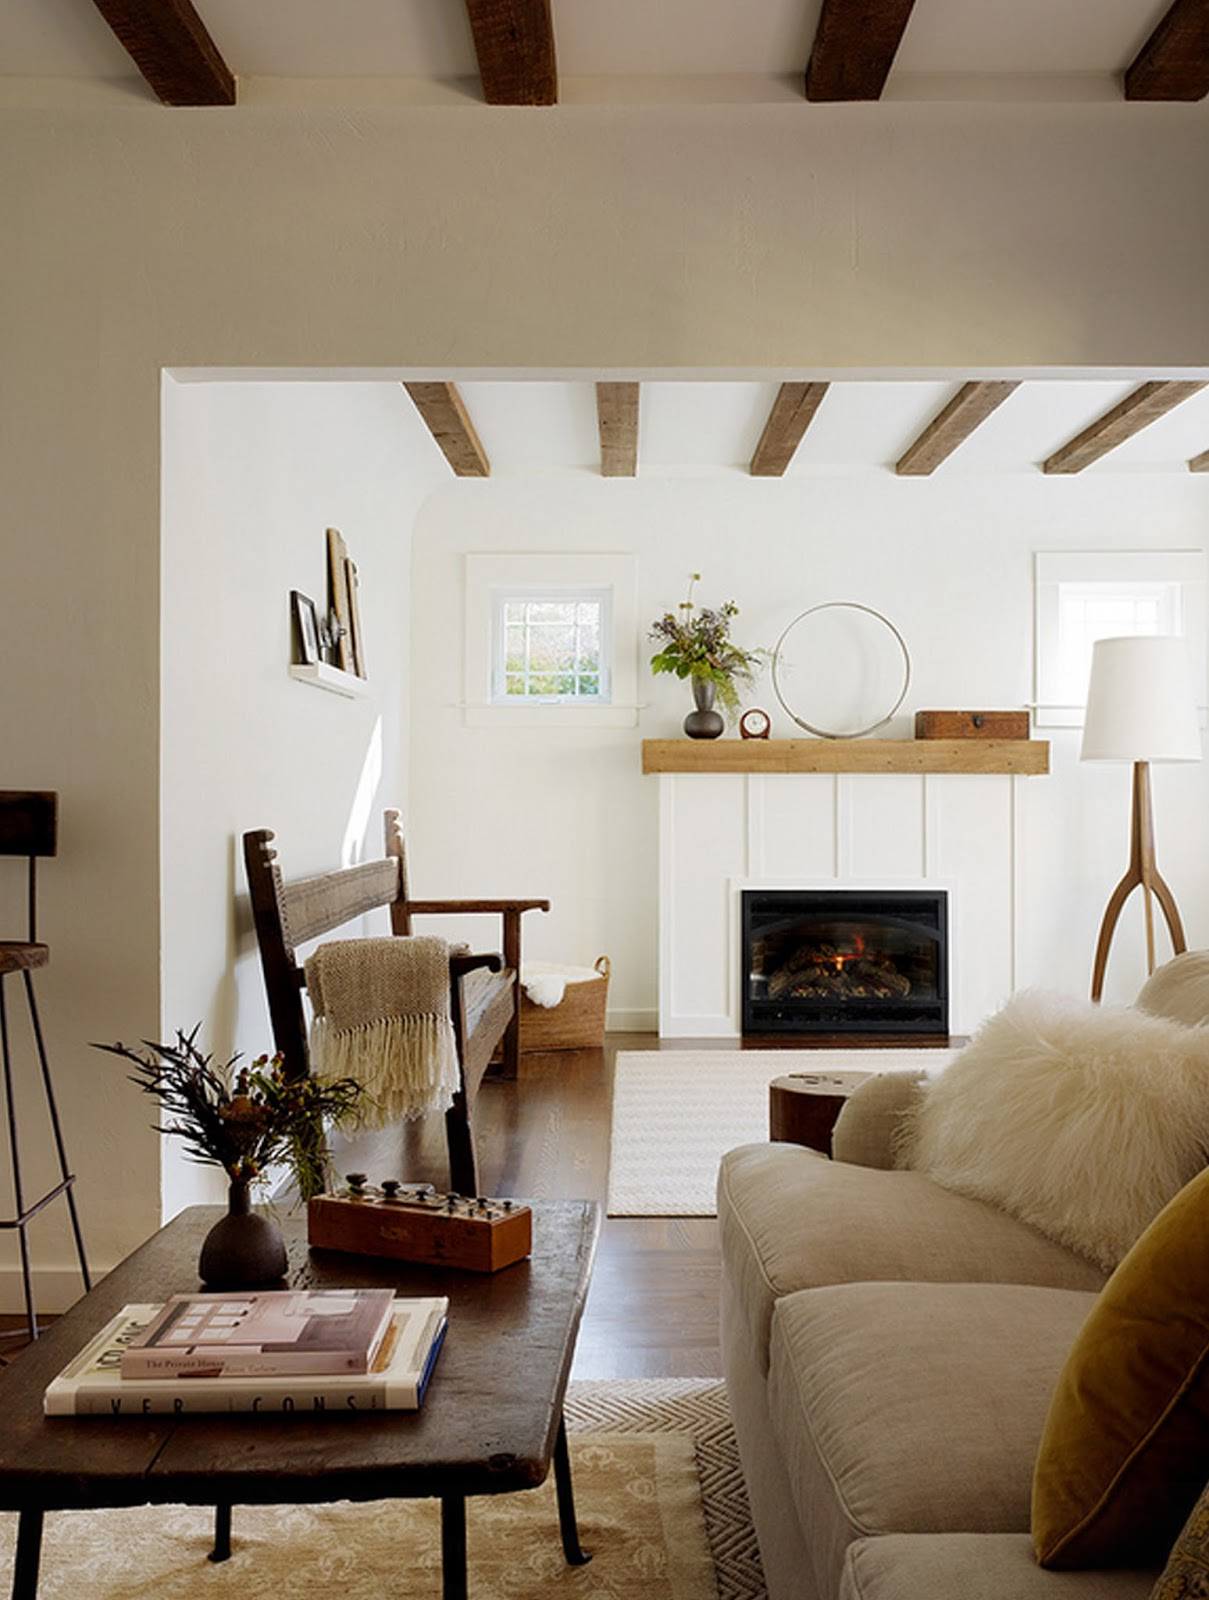 42 Ideas For Living Room Small Rustic Beams Livingroom: The Olde Mill: Laying Out Beams: Tips & Tricks